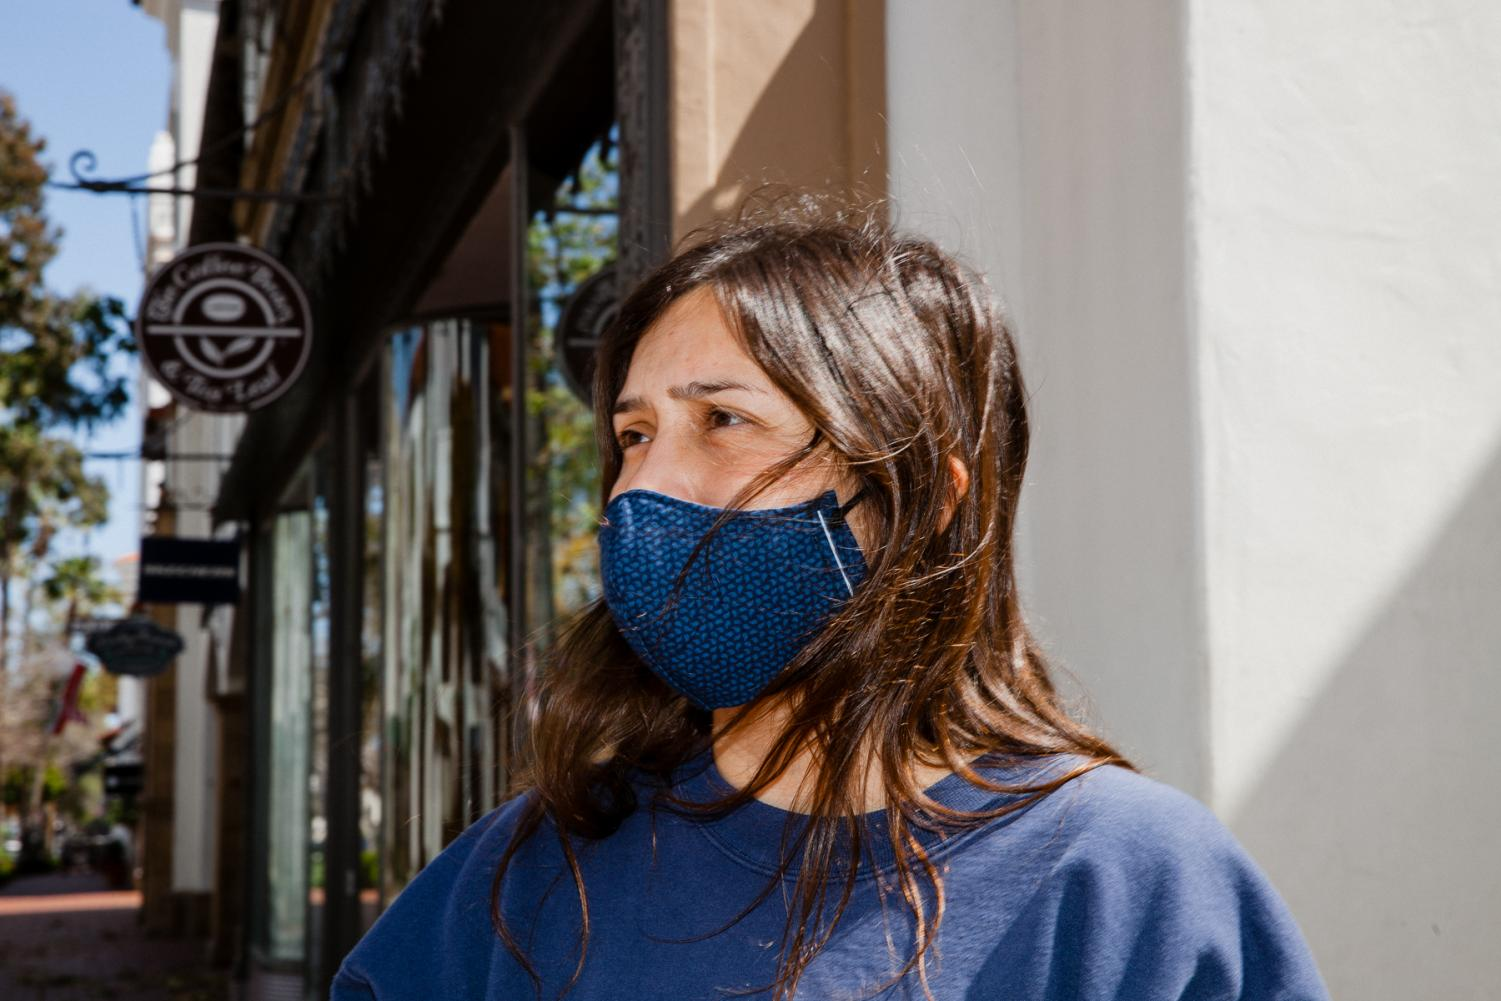 Lizeth Losa bought her mask from a boy on the street selling face coverings for four dollars. Monday, April 20 in Downtown Santa Barbara, Calif.